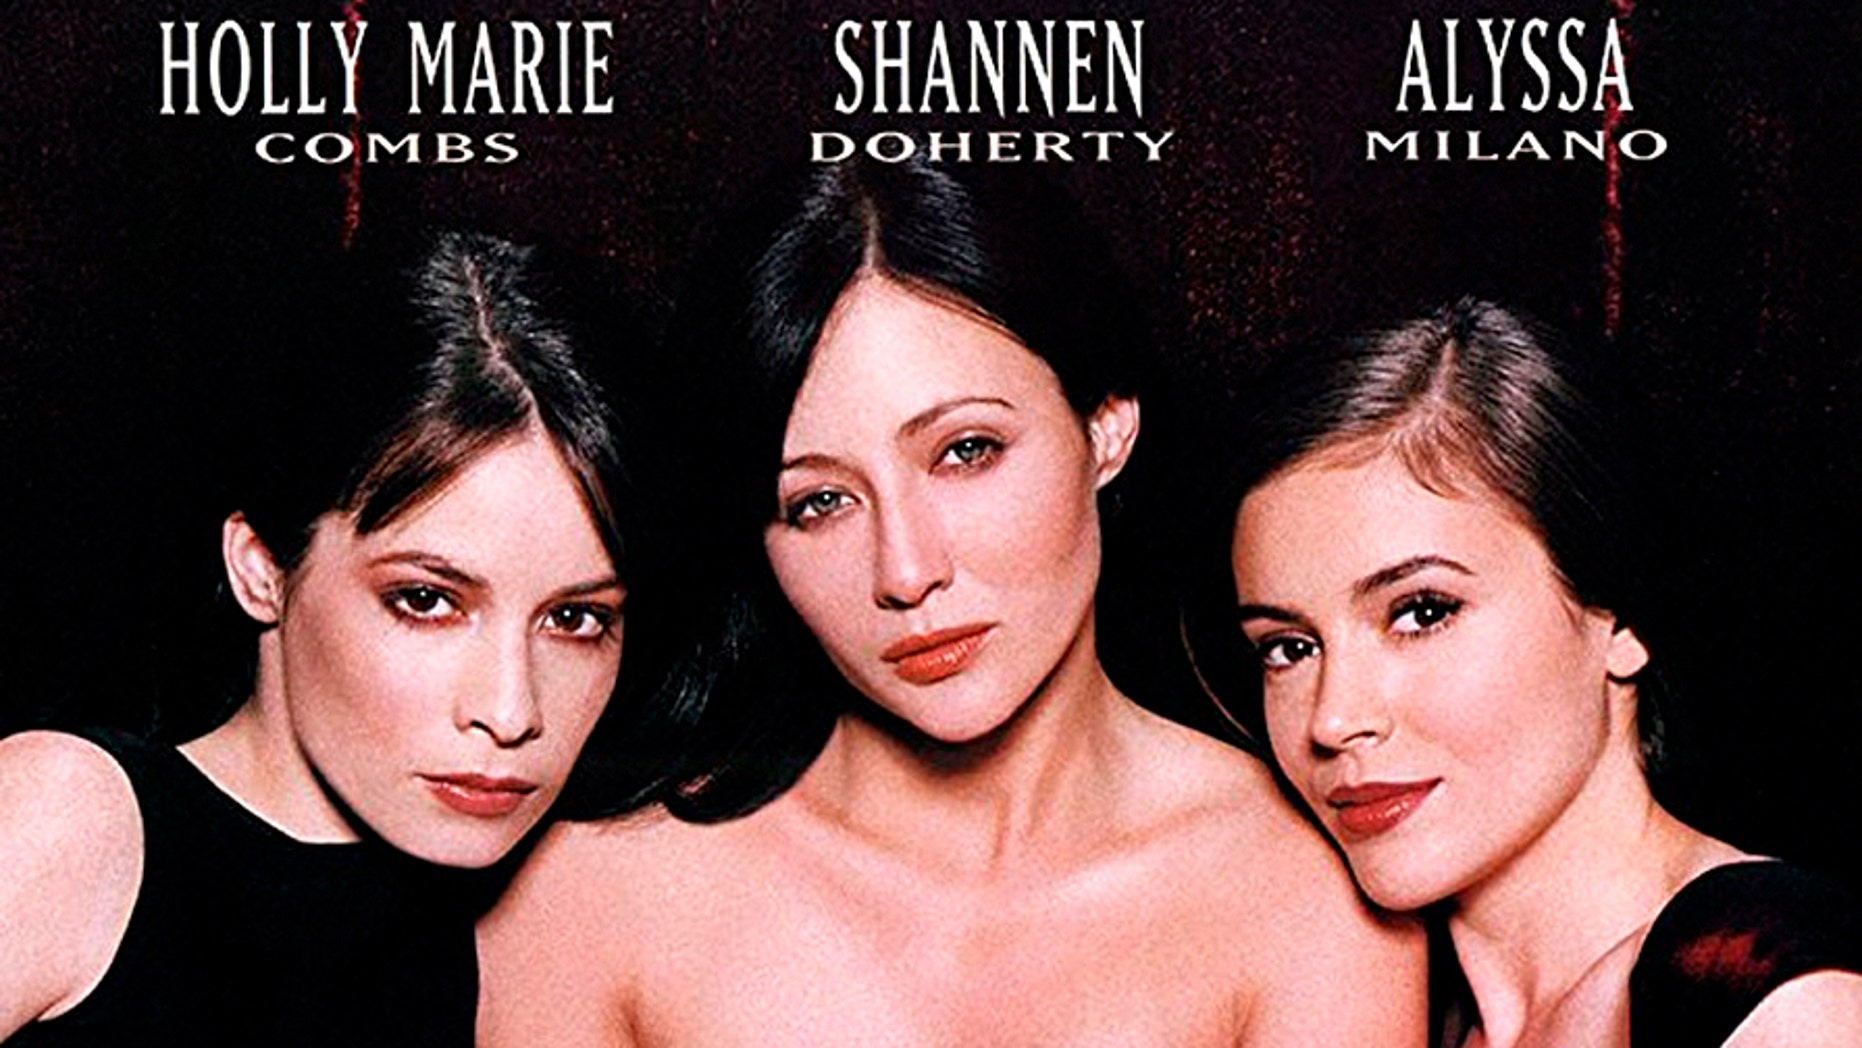 """The original cast of 'the WB series """"Charmed,"""" featured Holly Marie Combs, Shannen Doherty and Alyssa Milano."""